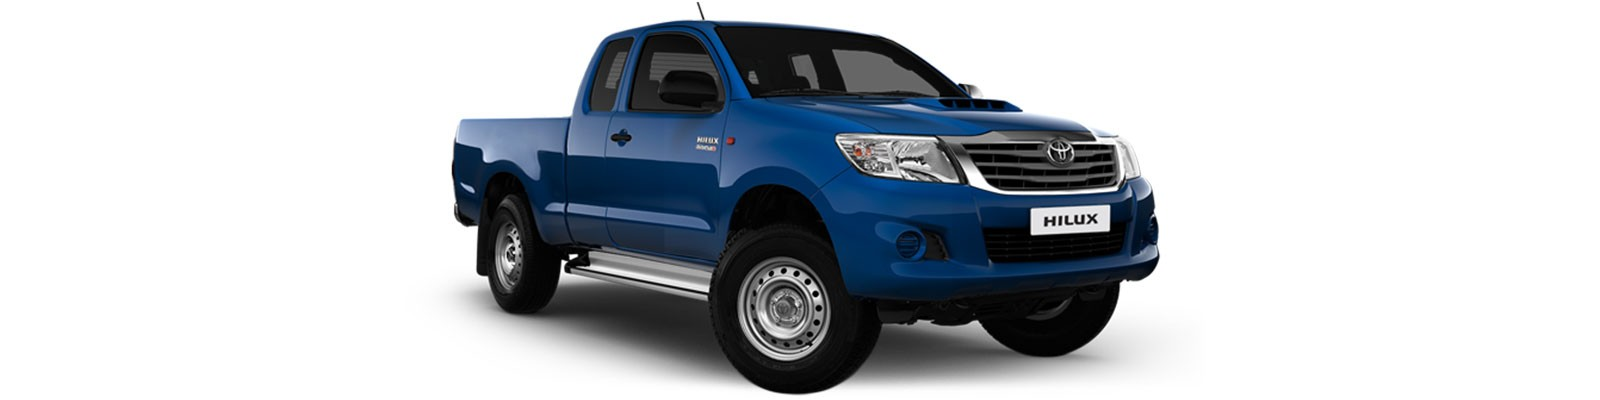 Accessories For Toyota Hilux Vigo Mk6 Extra Cab 2009 To 2012